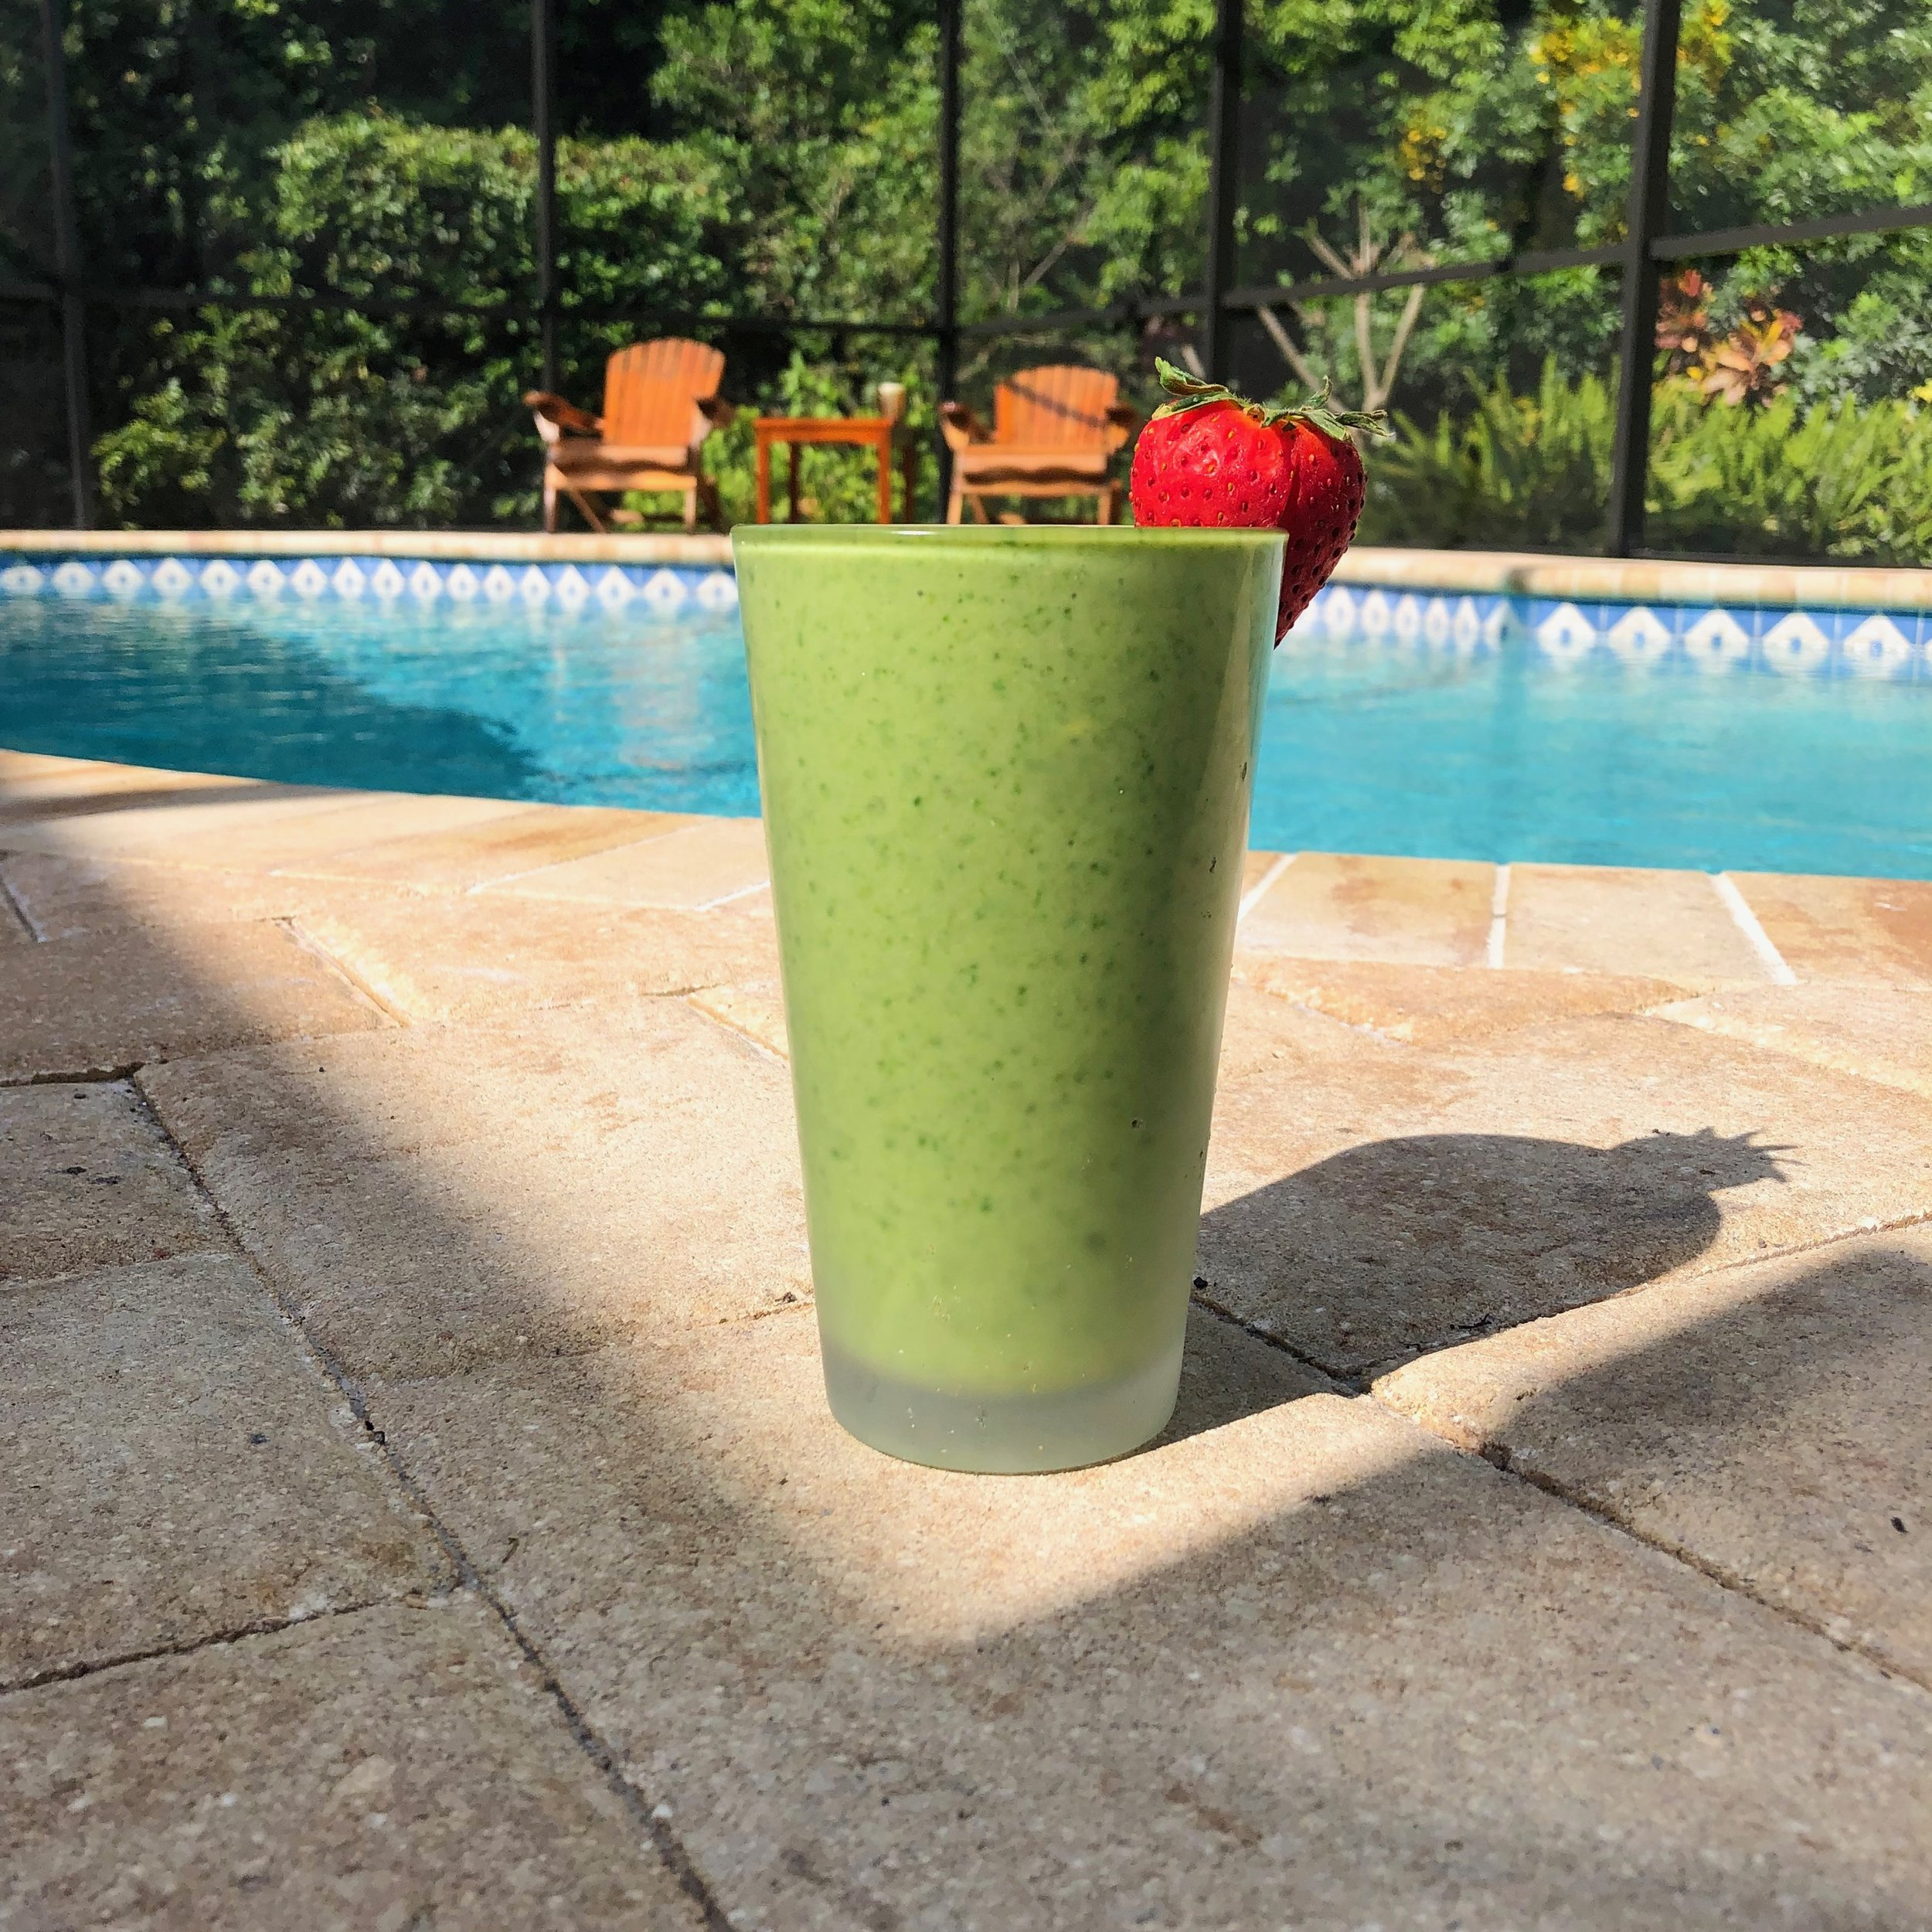 Iced Matcha Smoothie - 1/2 avocado1 banana1/2 cup nut milk1 cup water1 tbsp flaxseed meal1 scoop collagen (Further Food)1 scoop matcha (Further Food)3/4 cup frozen kaleIce to thicken